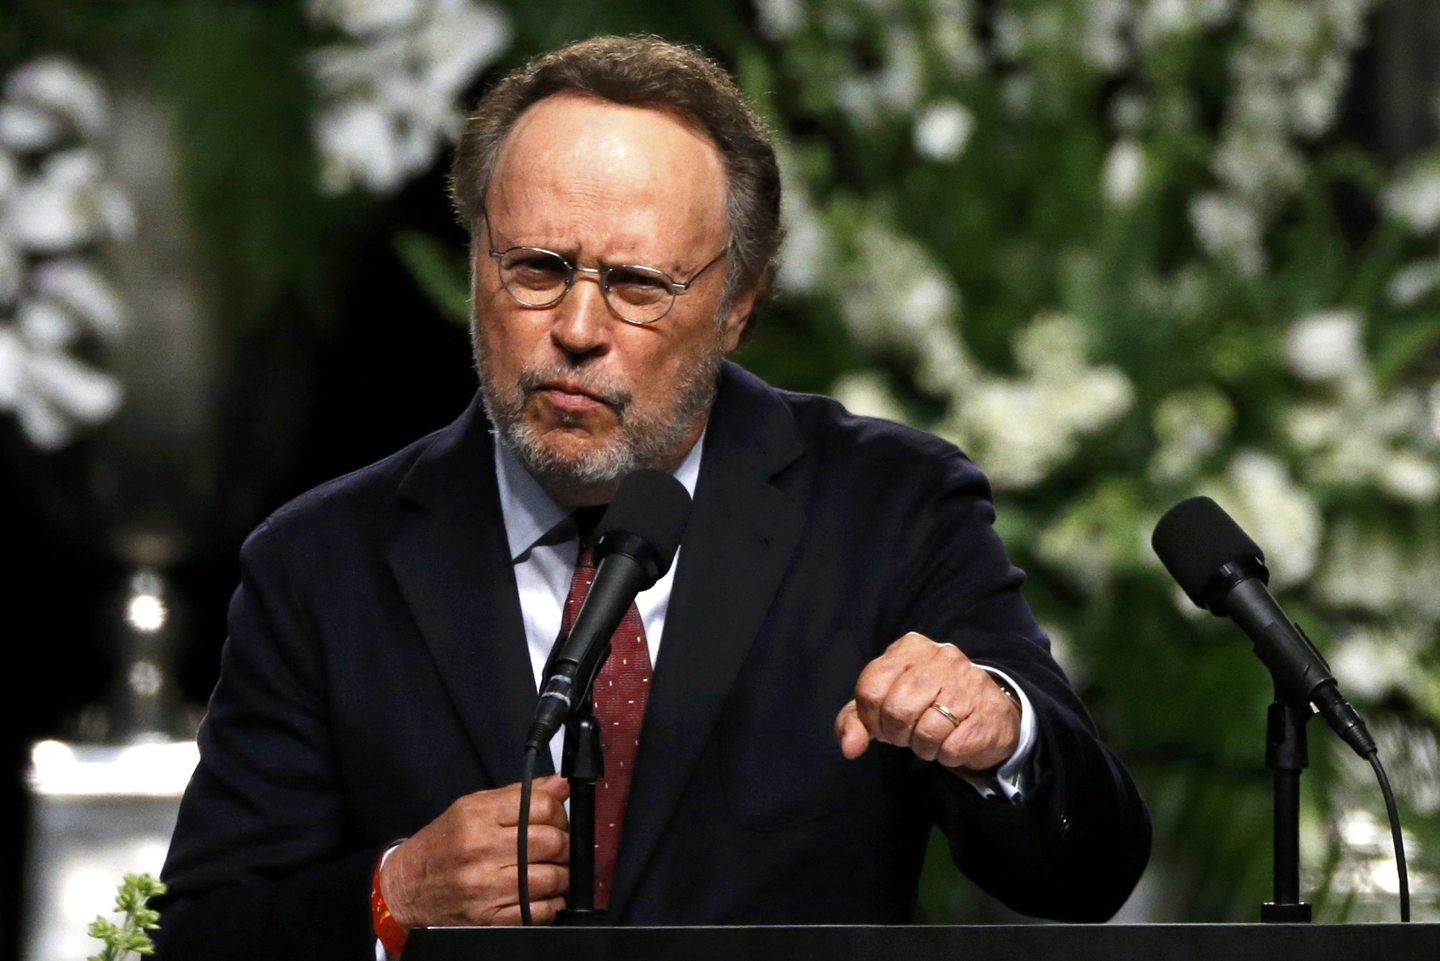 Actor Billy Crystal speaks at a memorial service for the late boxer Muhammad Ali in Louisville, Kentucky, U.S., June 10, 2016.